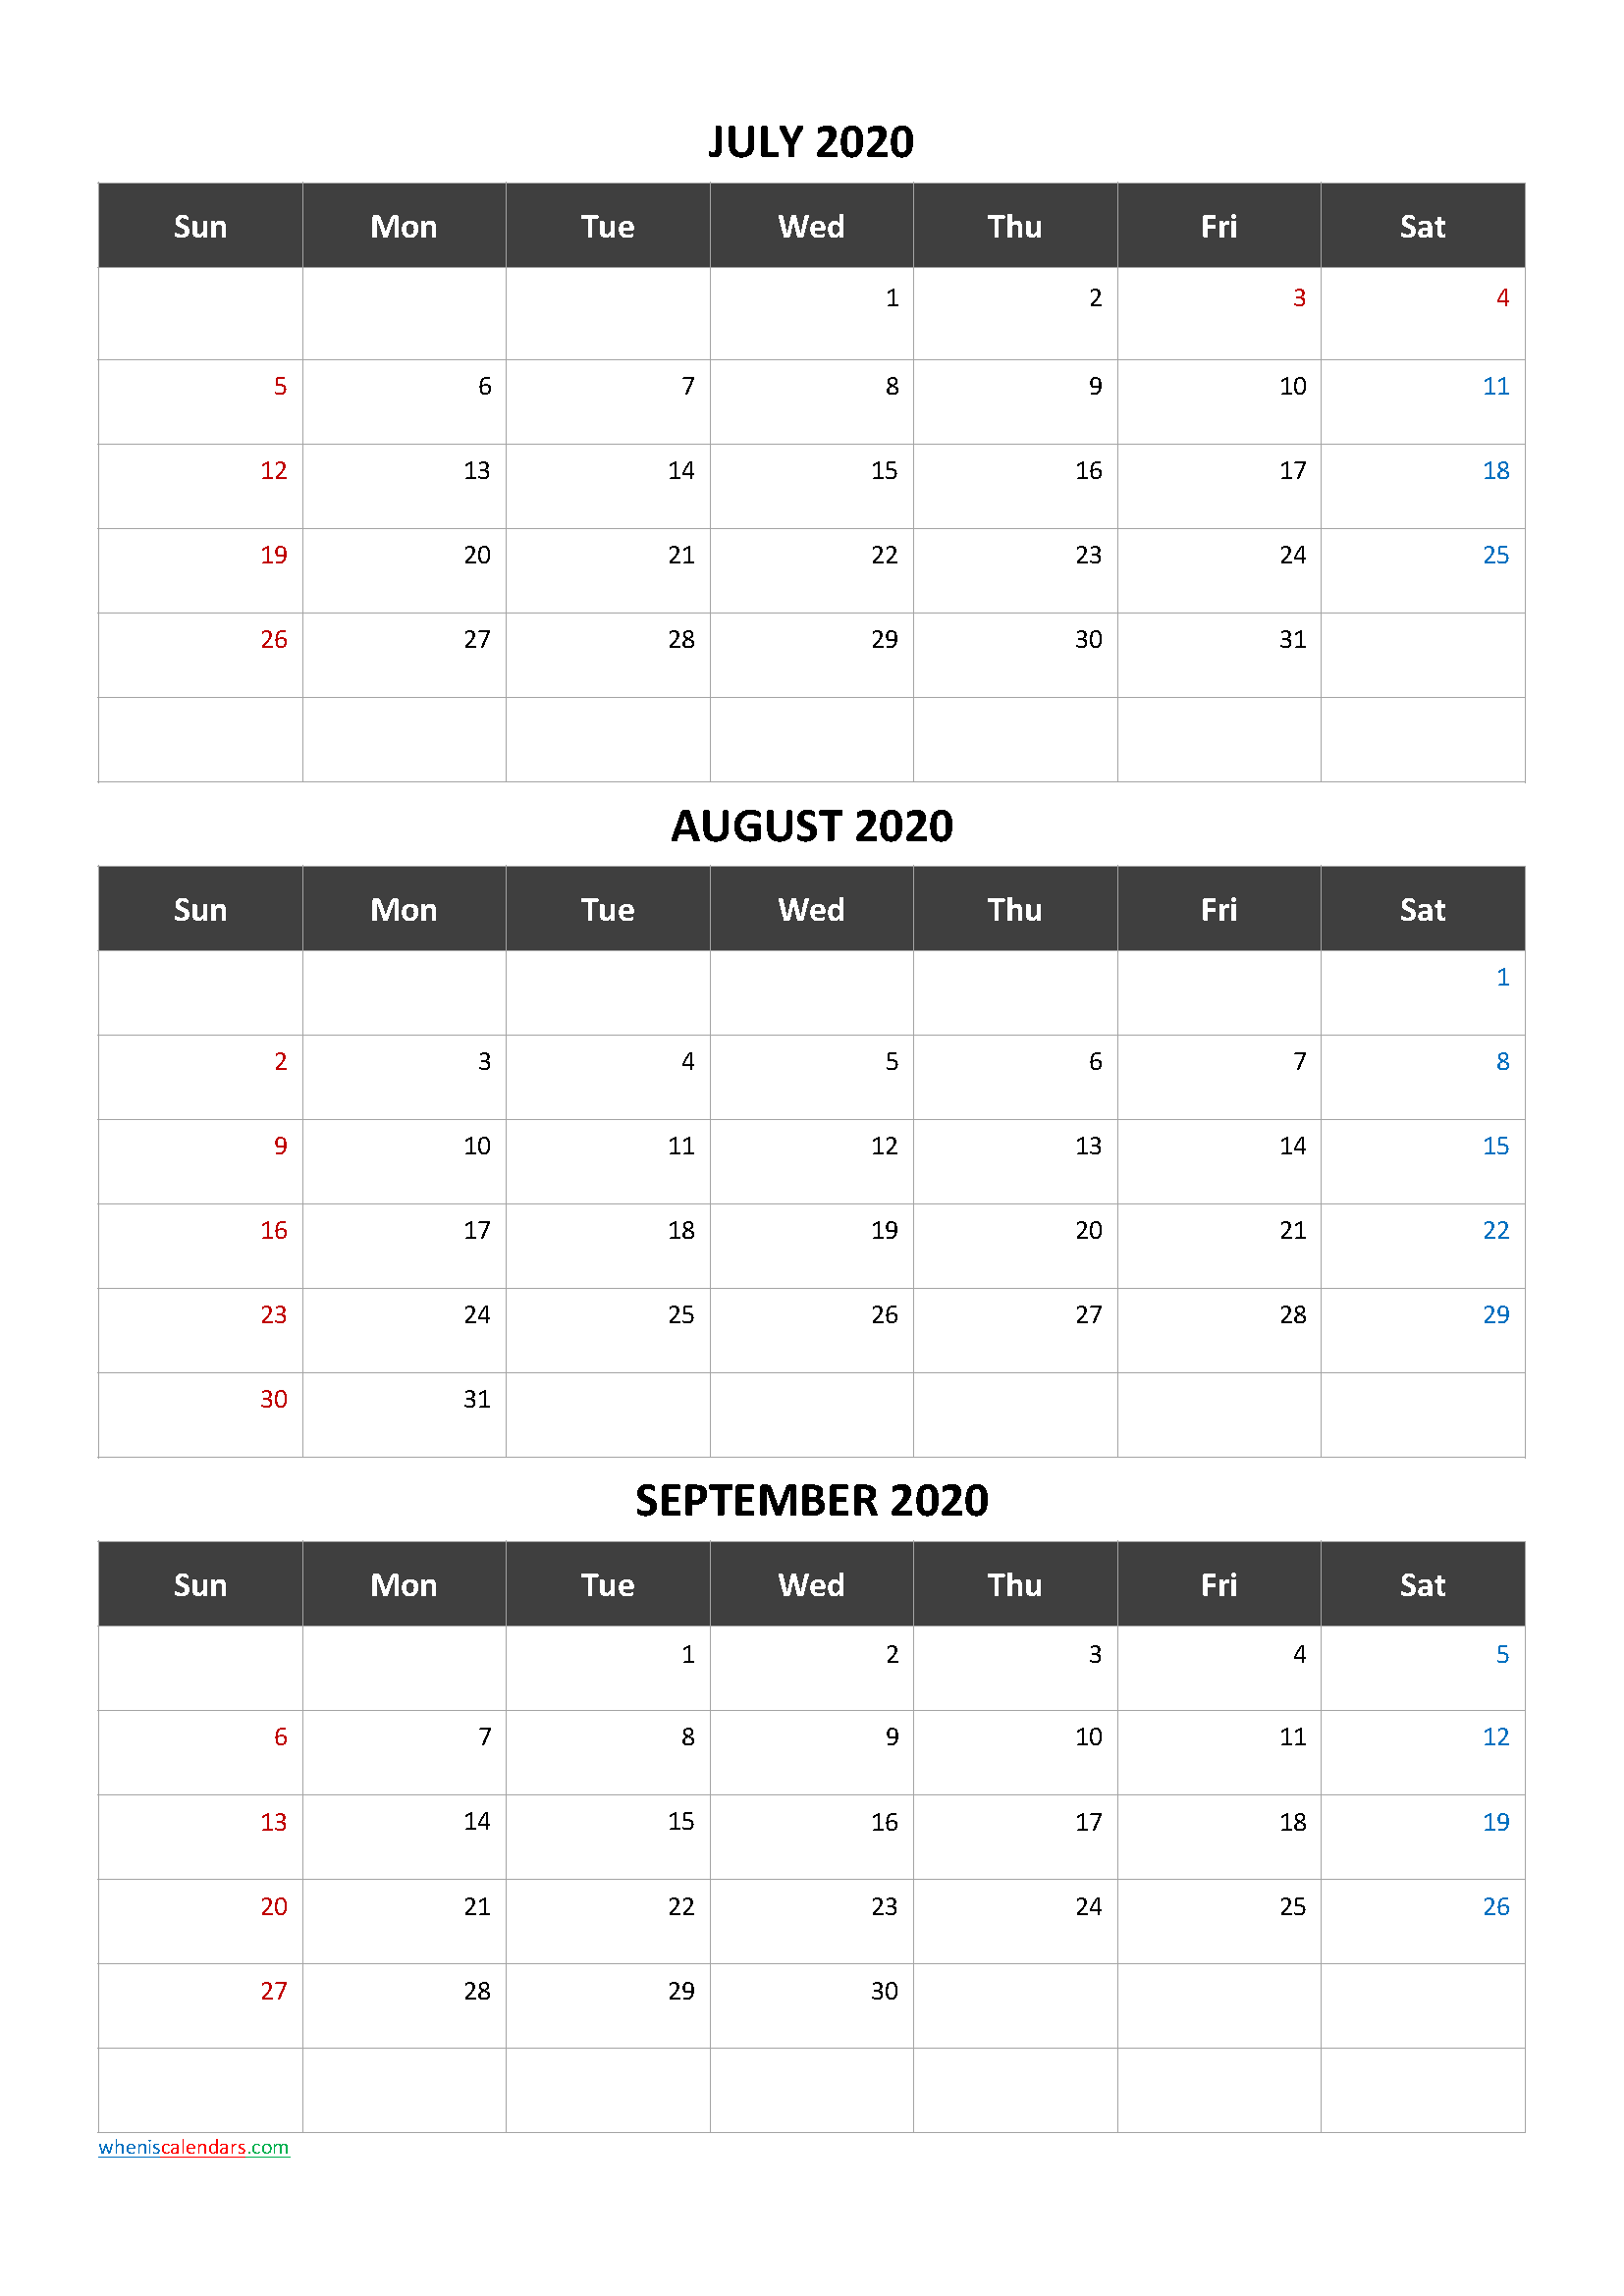 Free Printable 3 Month Calendar2020 July August September